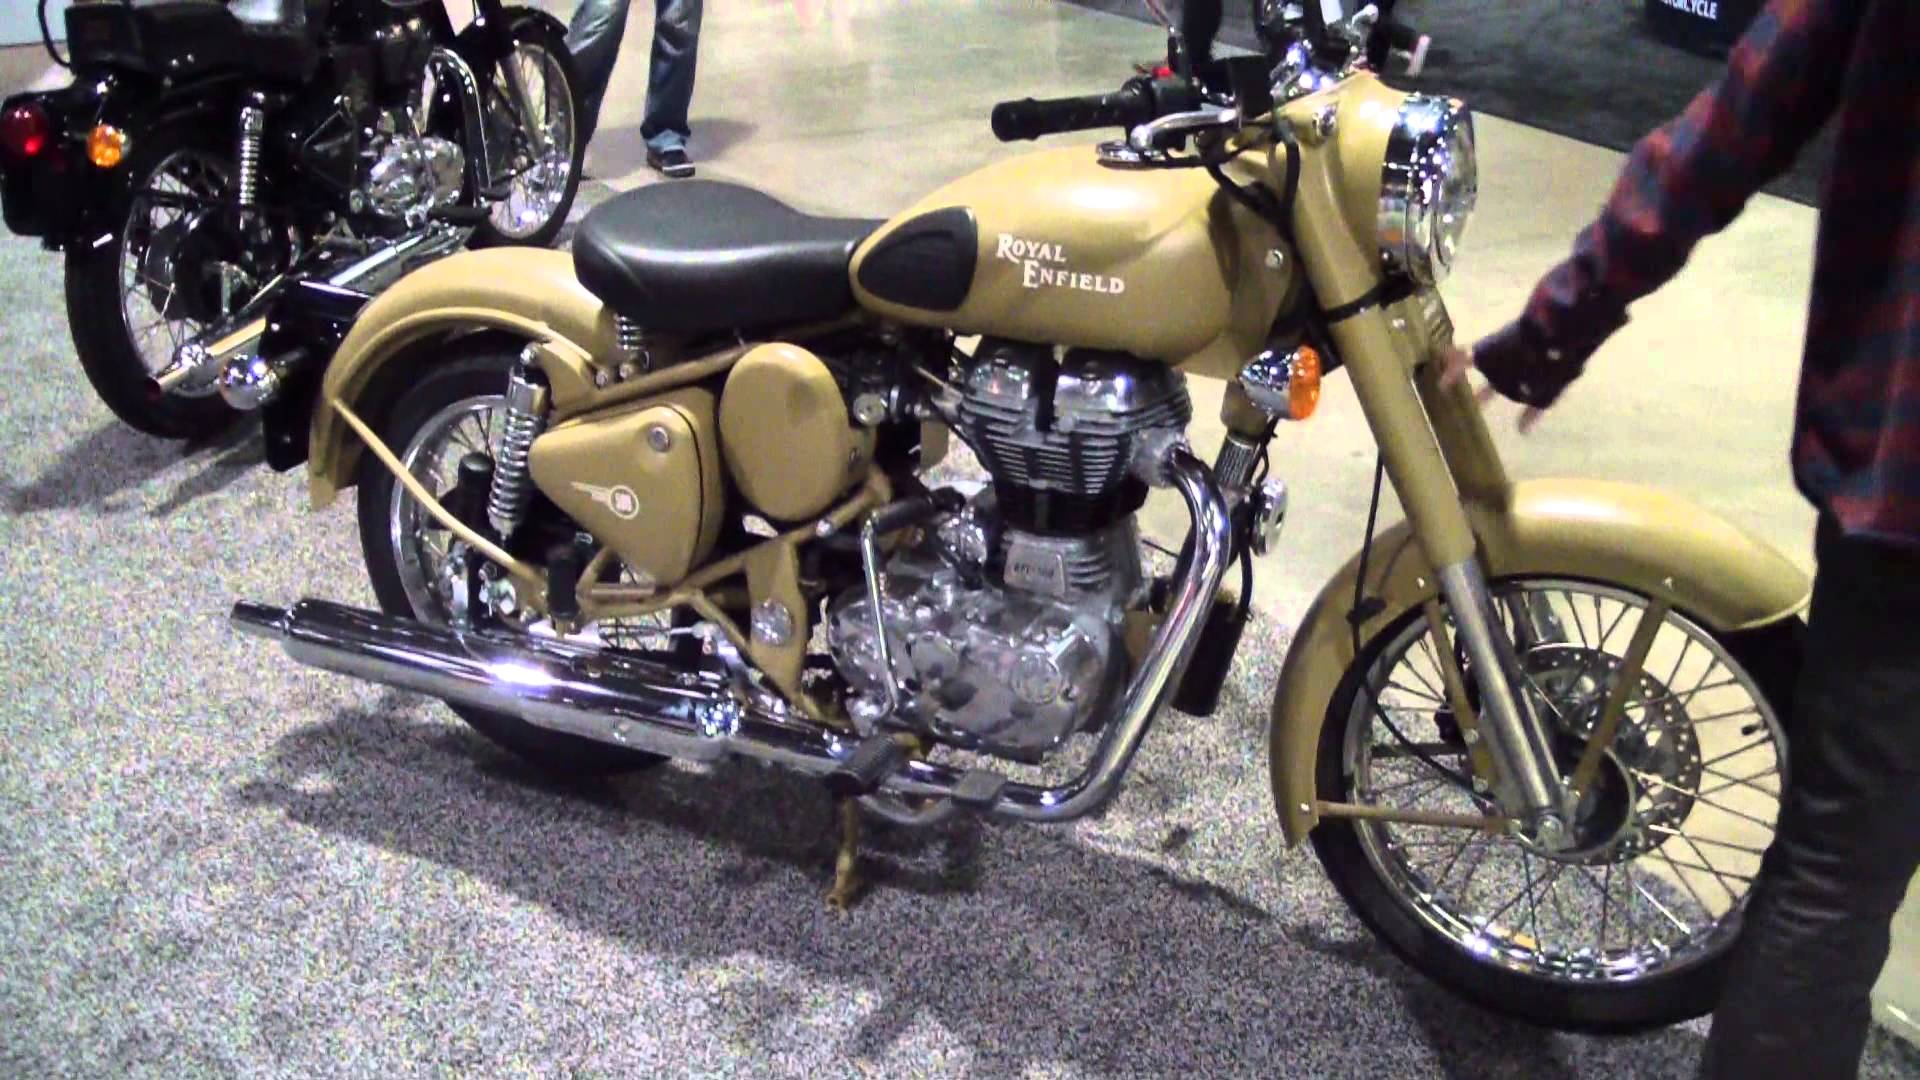 Royal Enfield Bullet 500 Army 1997 images #158645